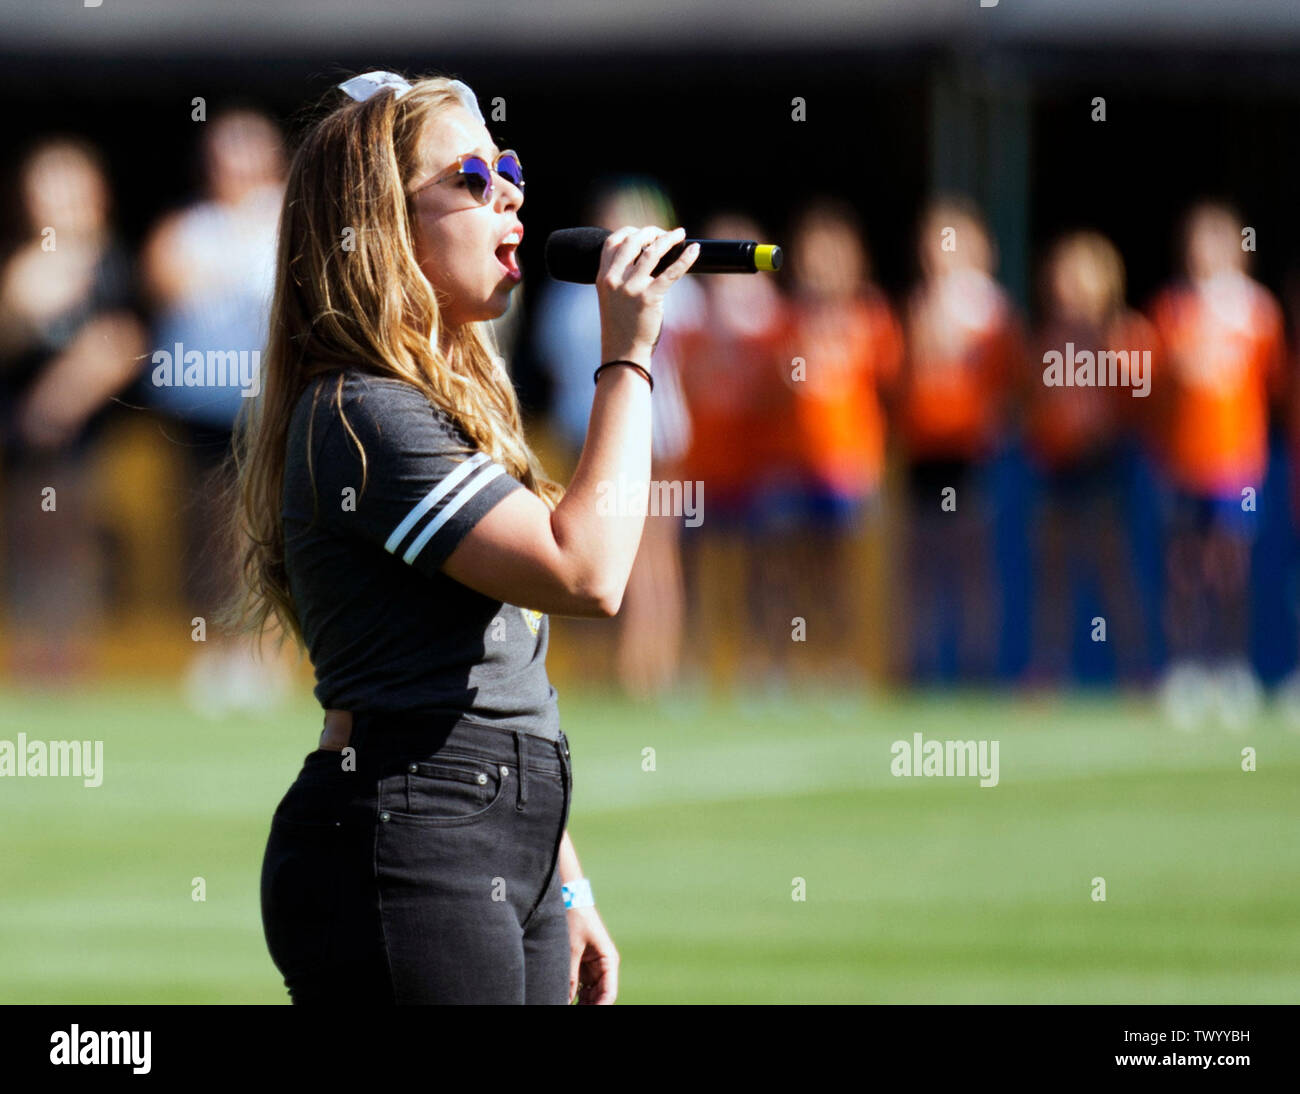 June 23, 2019: Julia Ecos sings the National anthem before